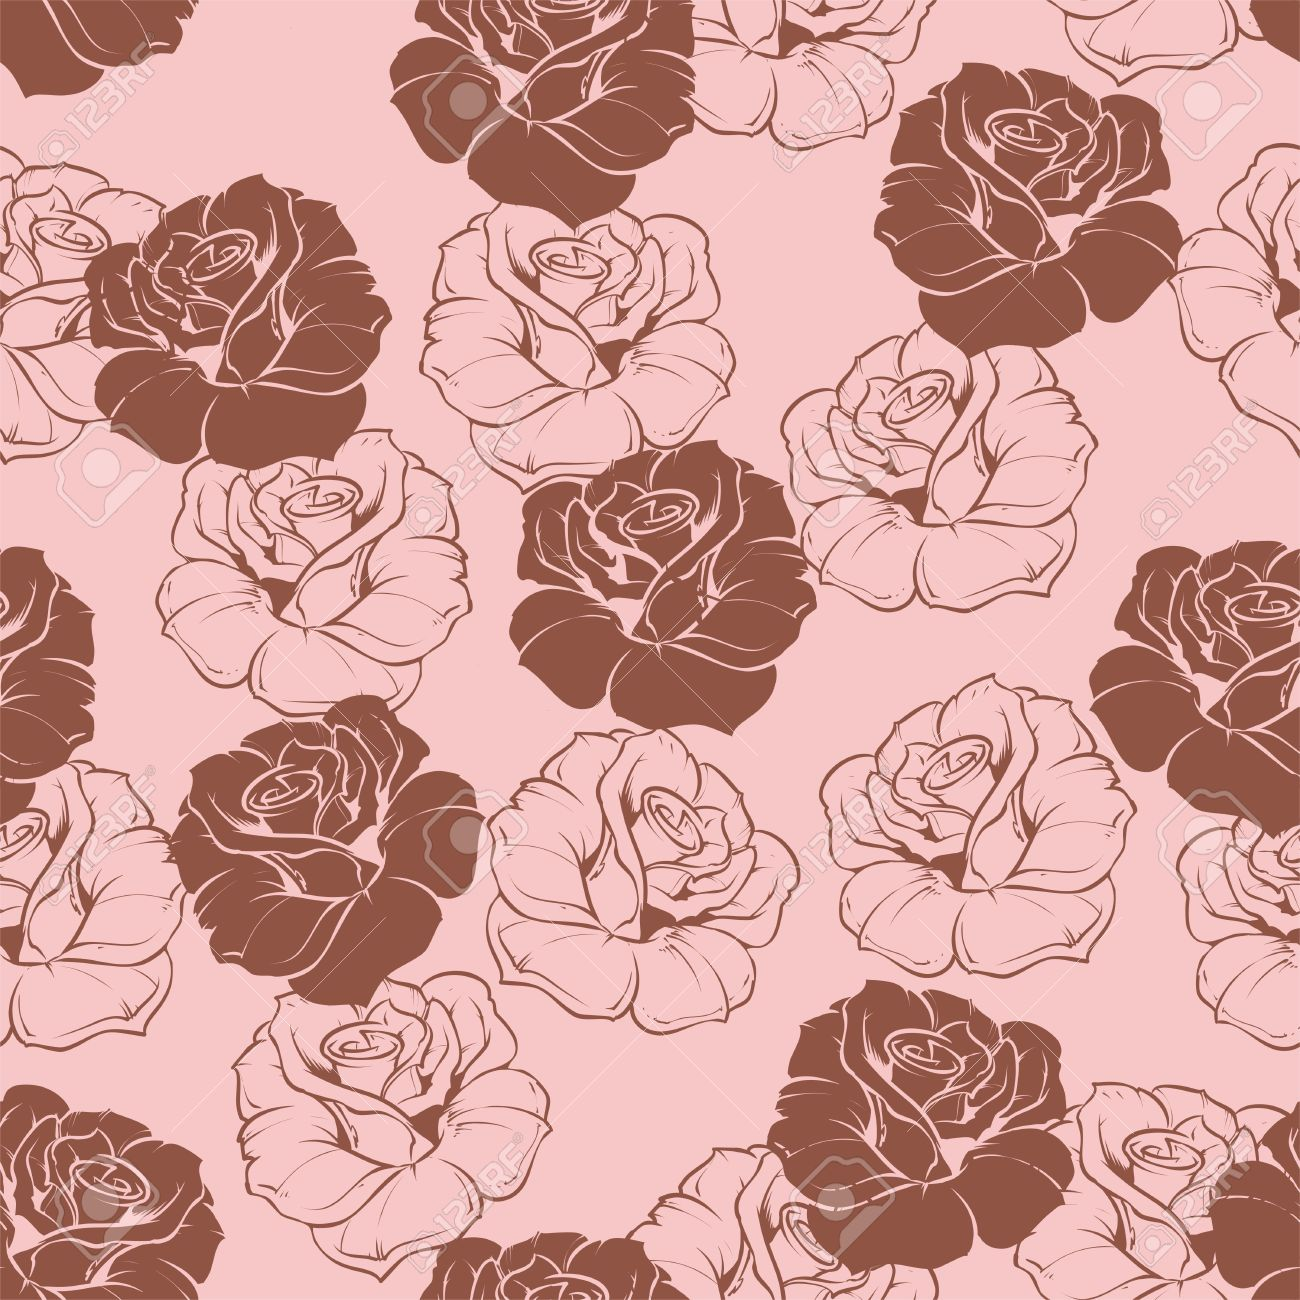 Seamless Vector Floral Pattern With Pink And Dark Chocolate